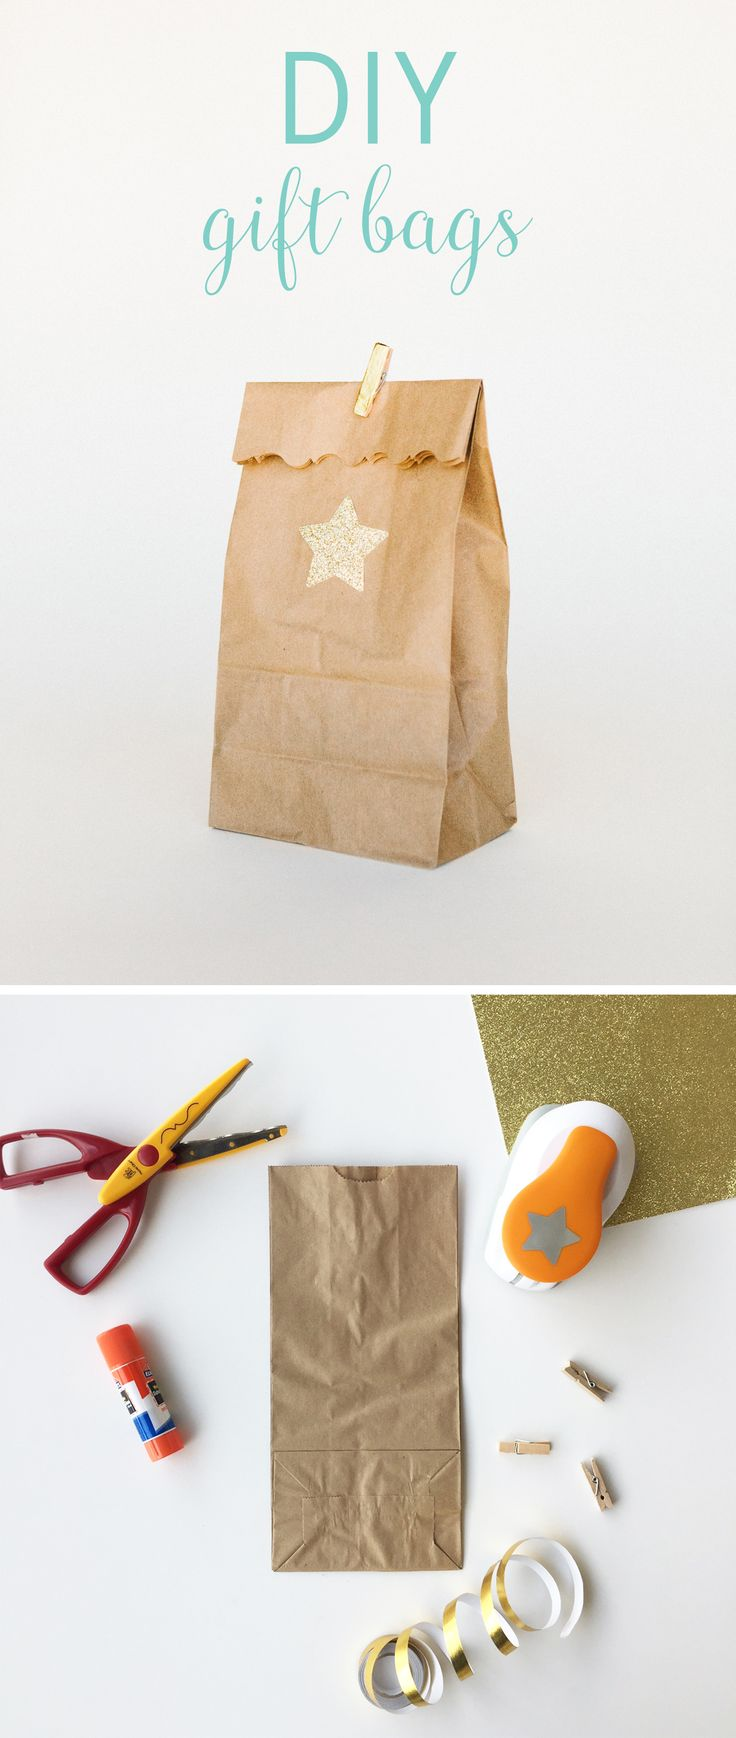 When it comes time to throw a kids party, there is so much to buy. Food, balloons, party favors … but the bags? Try this fun and easy craft to turn brown paper lunch bags into cute kids gift bags. This party hack is so simple you can have your kids help out!